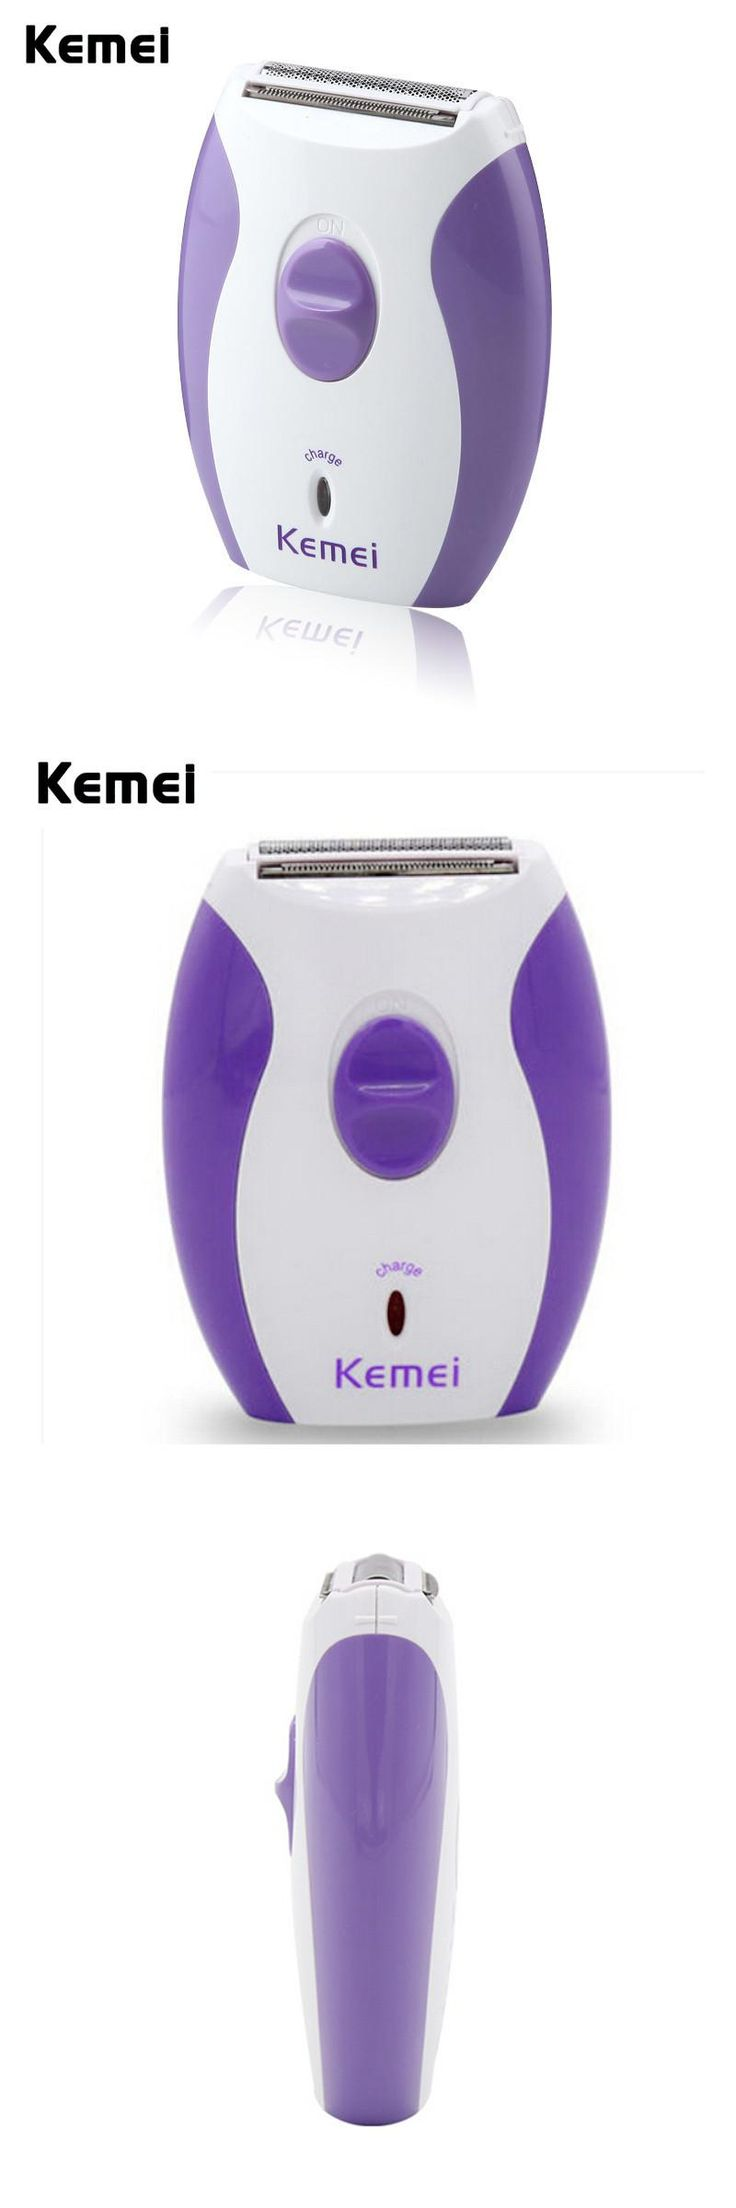 [Visit to Buy] Kemei KM-280R Women Rechargeable Epilator Little And Dainty Feminine Electric lady Shaver Hair Removal Shaving Products #Advertisement